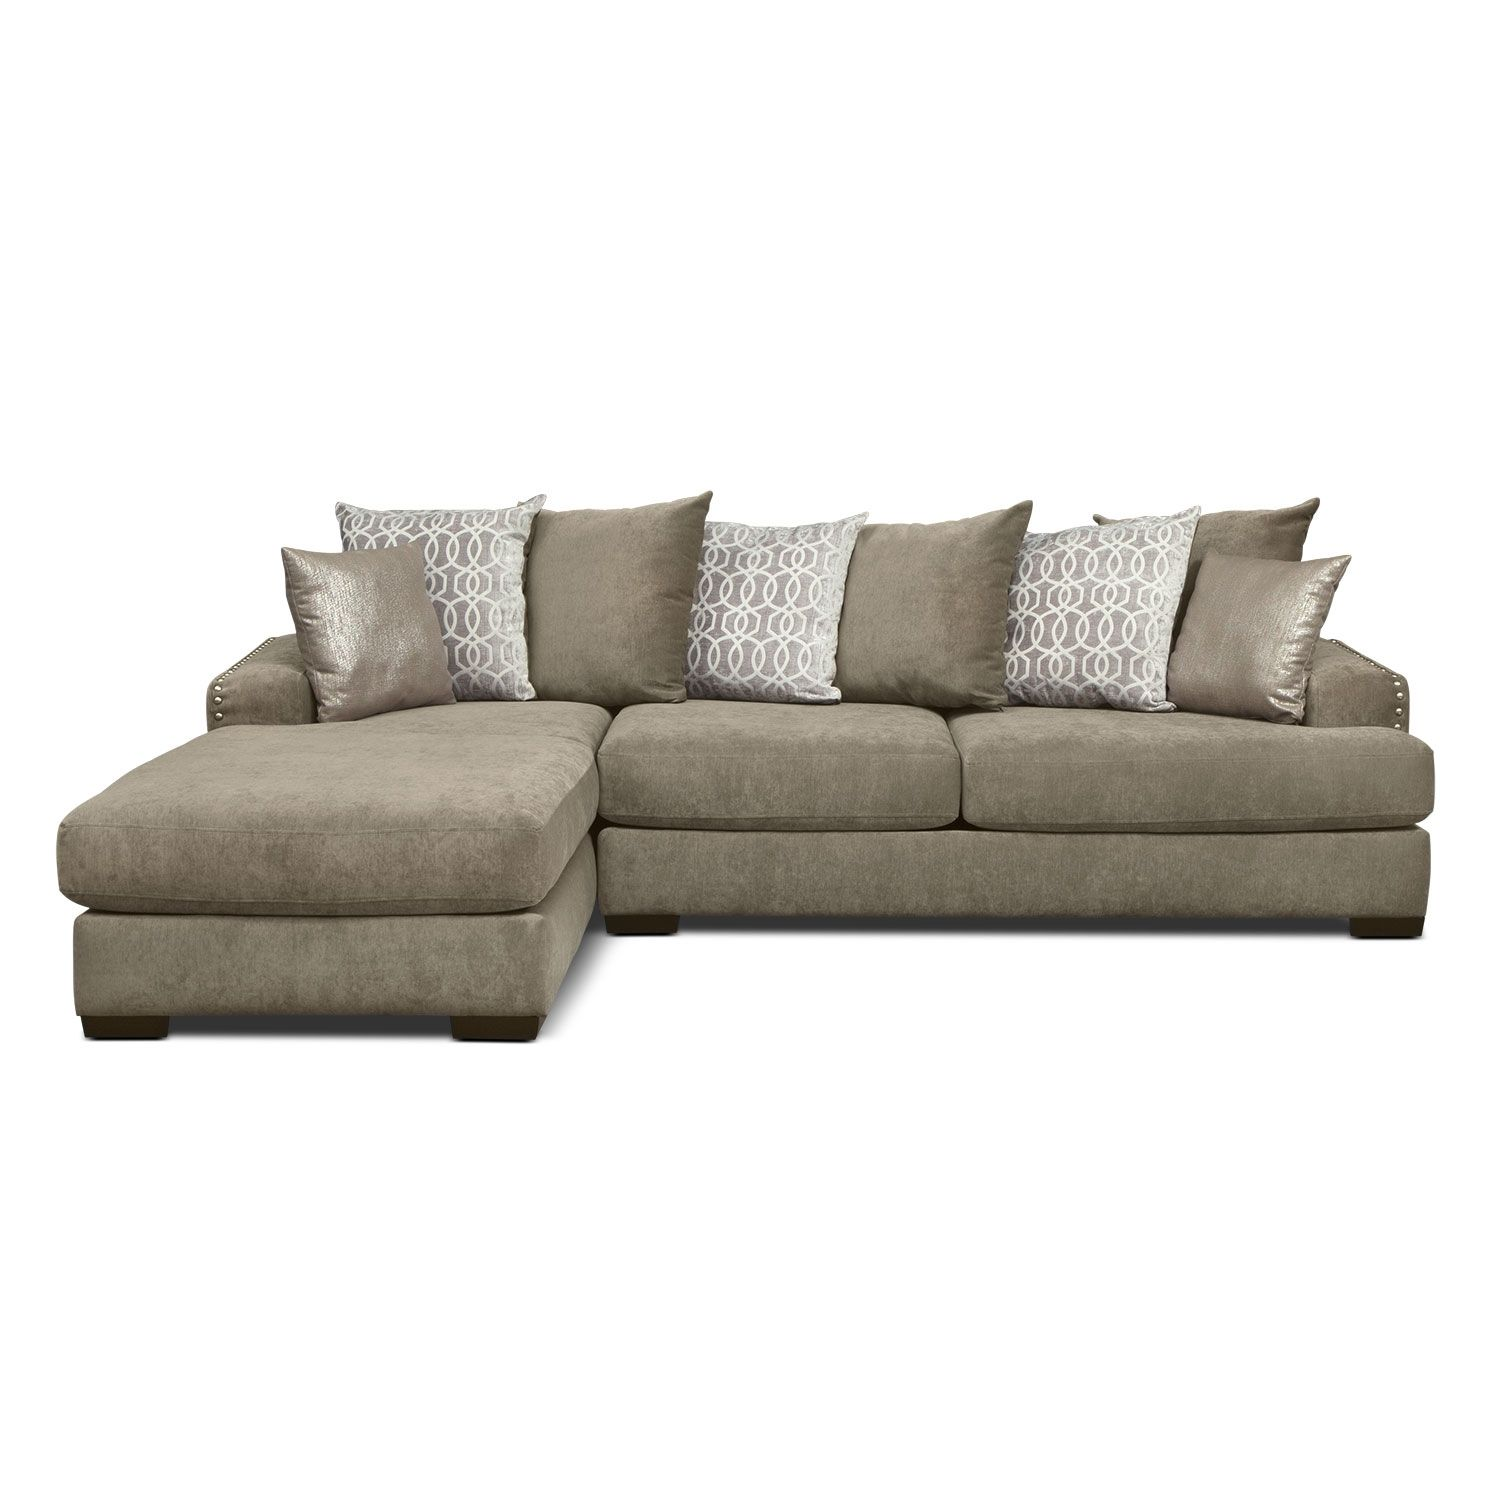 Ashburn 3 Pc Sectional W 4 Pillows